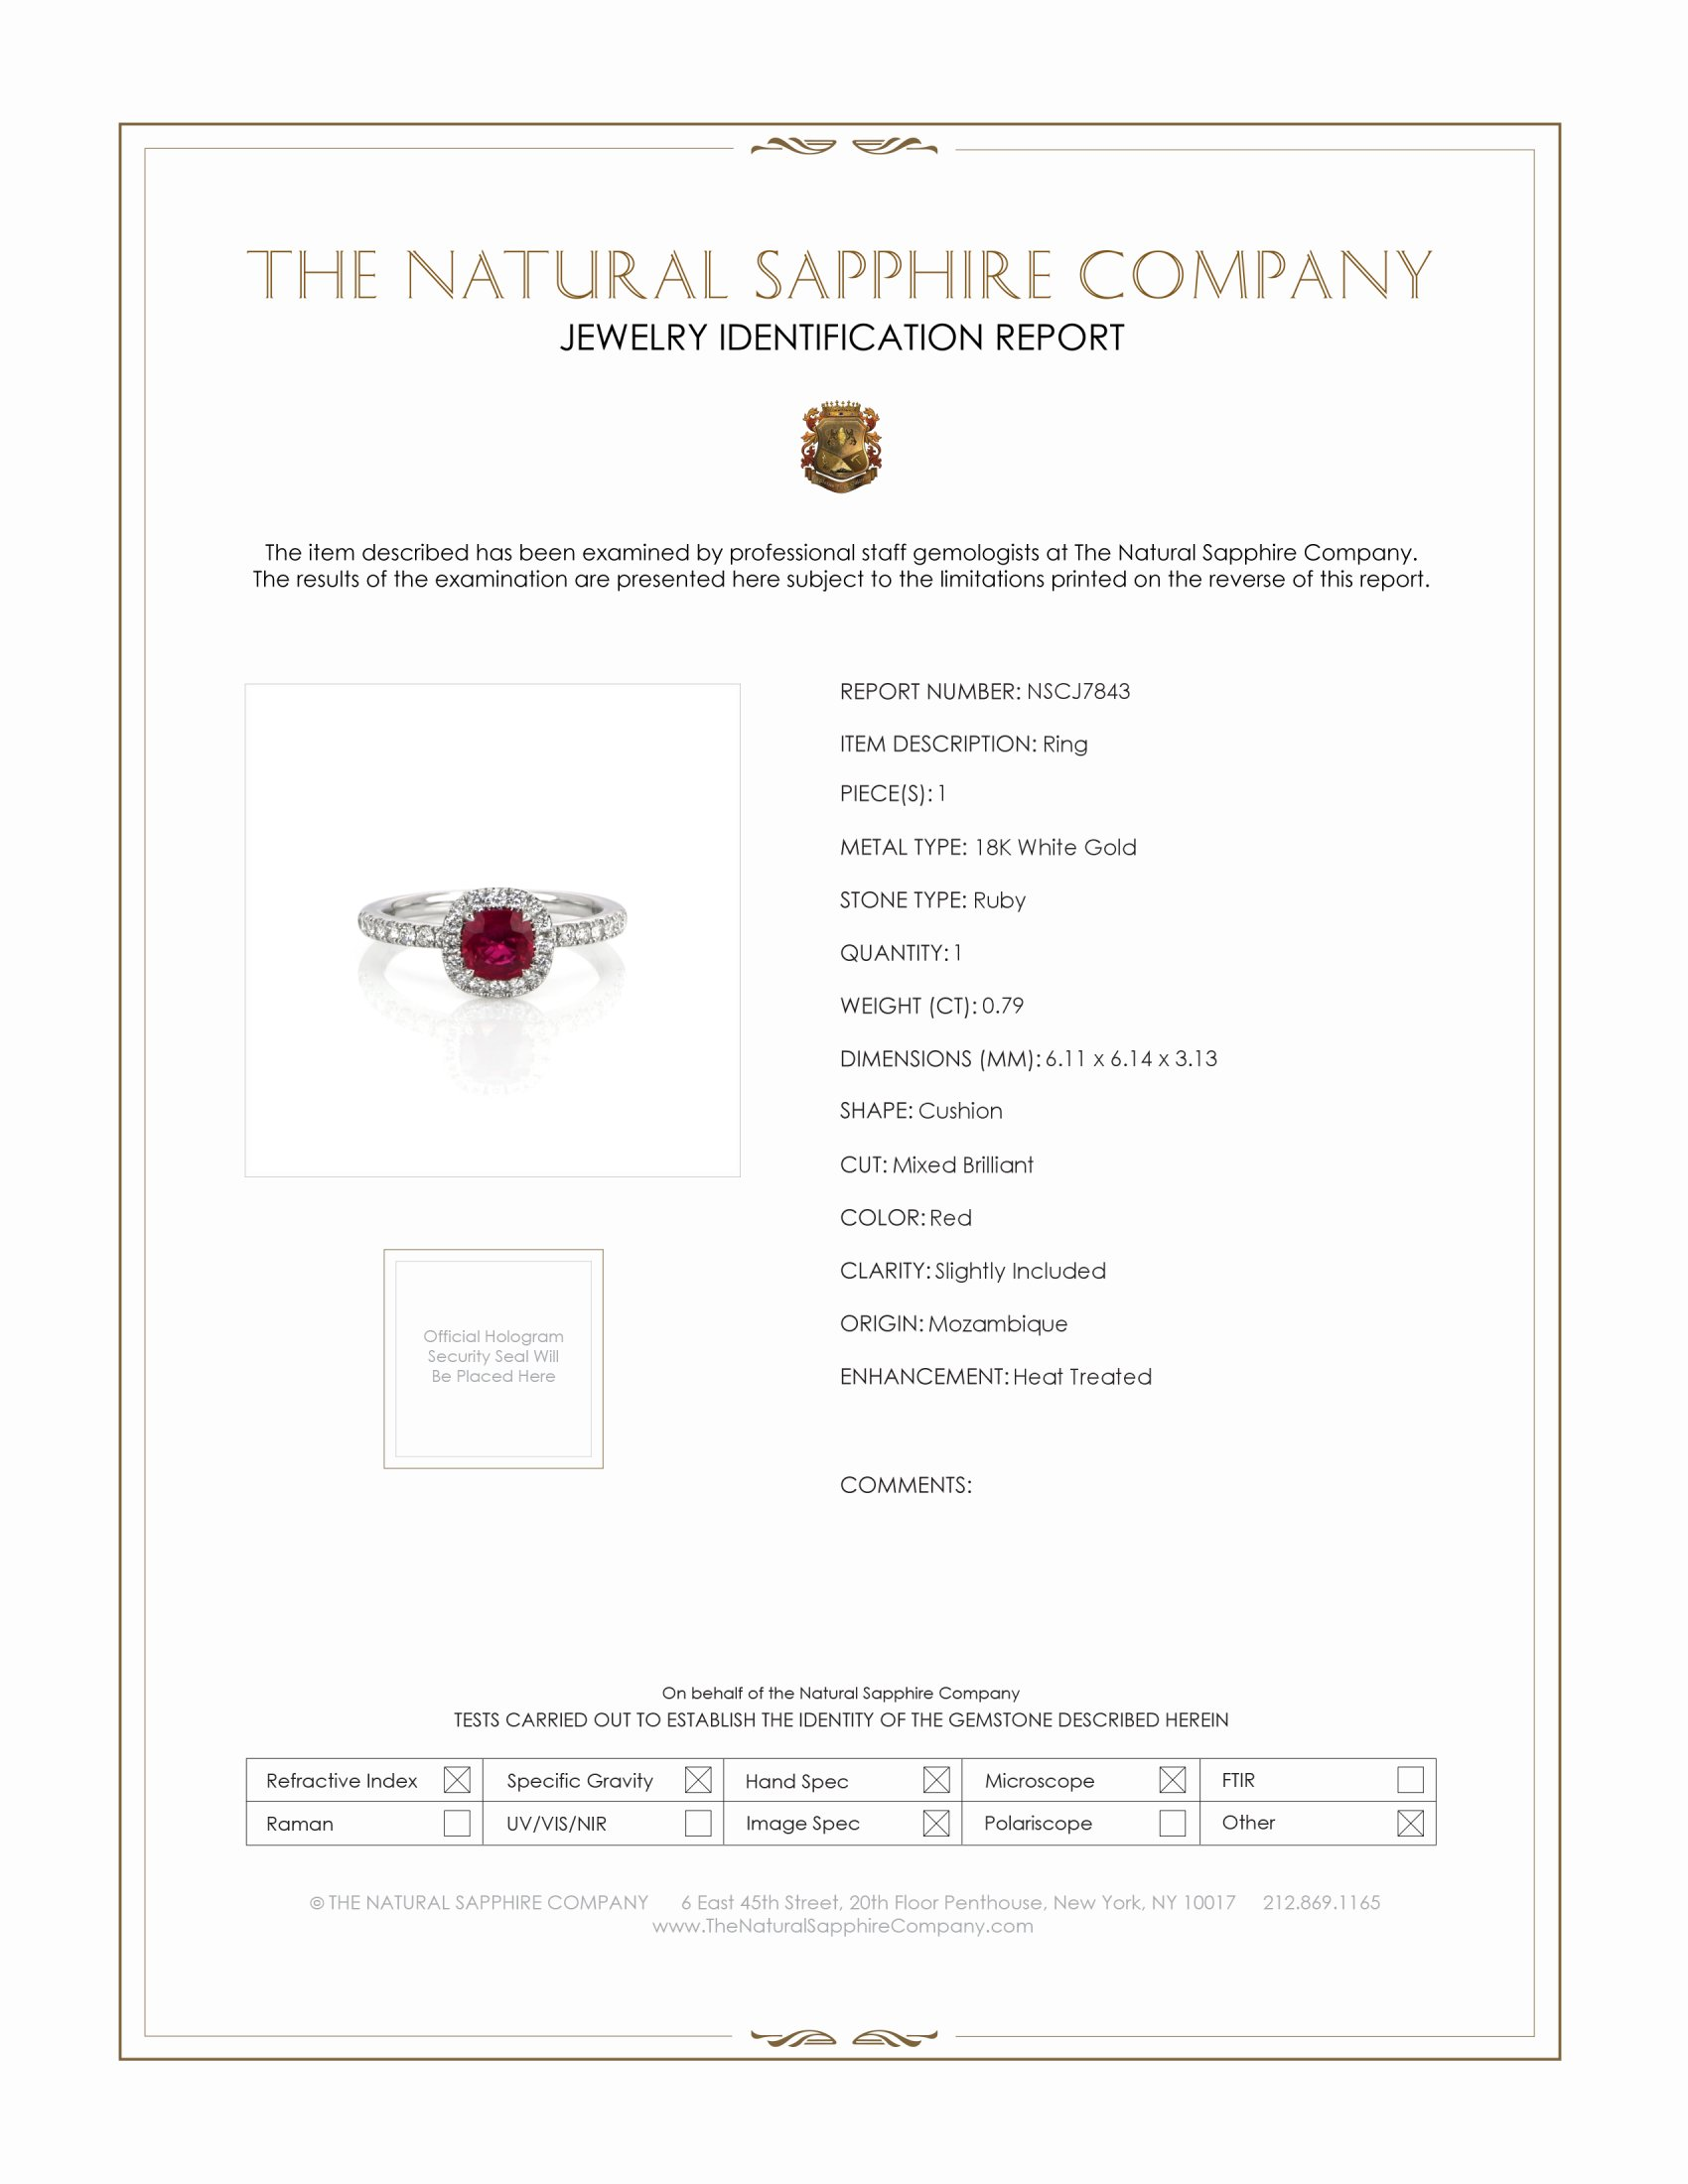 0.79ct Ruby Ring Certification